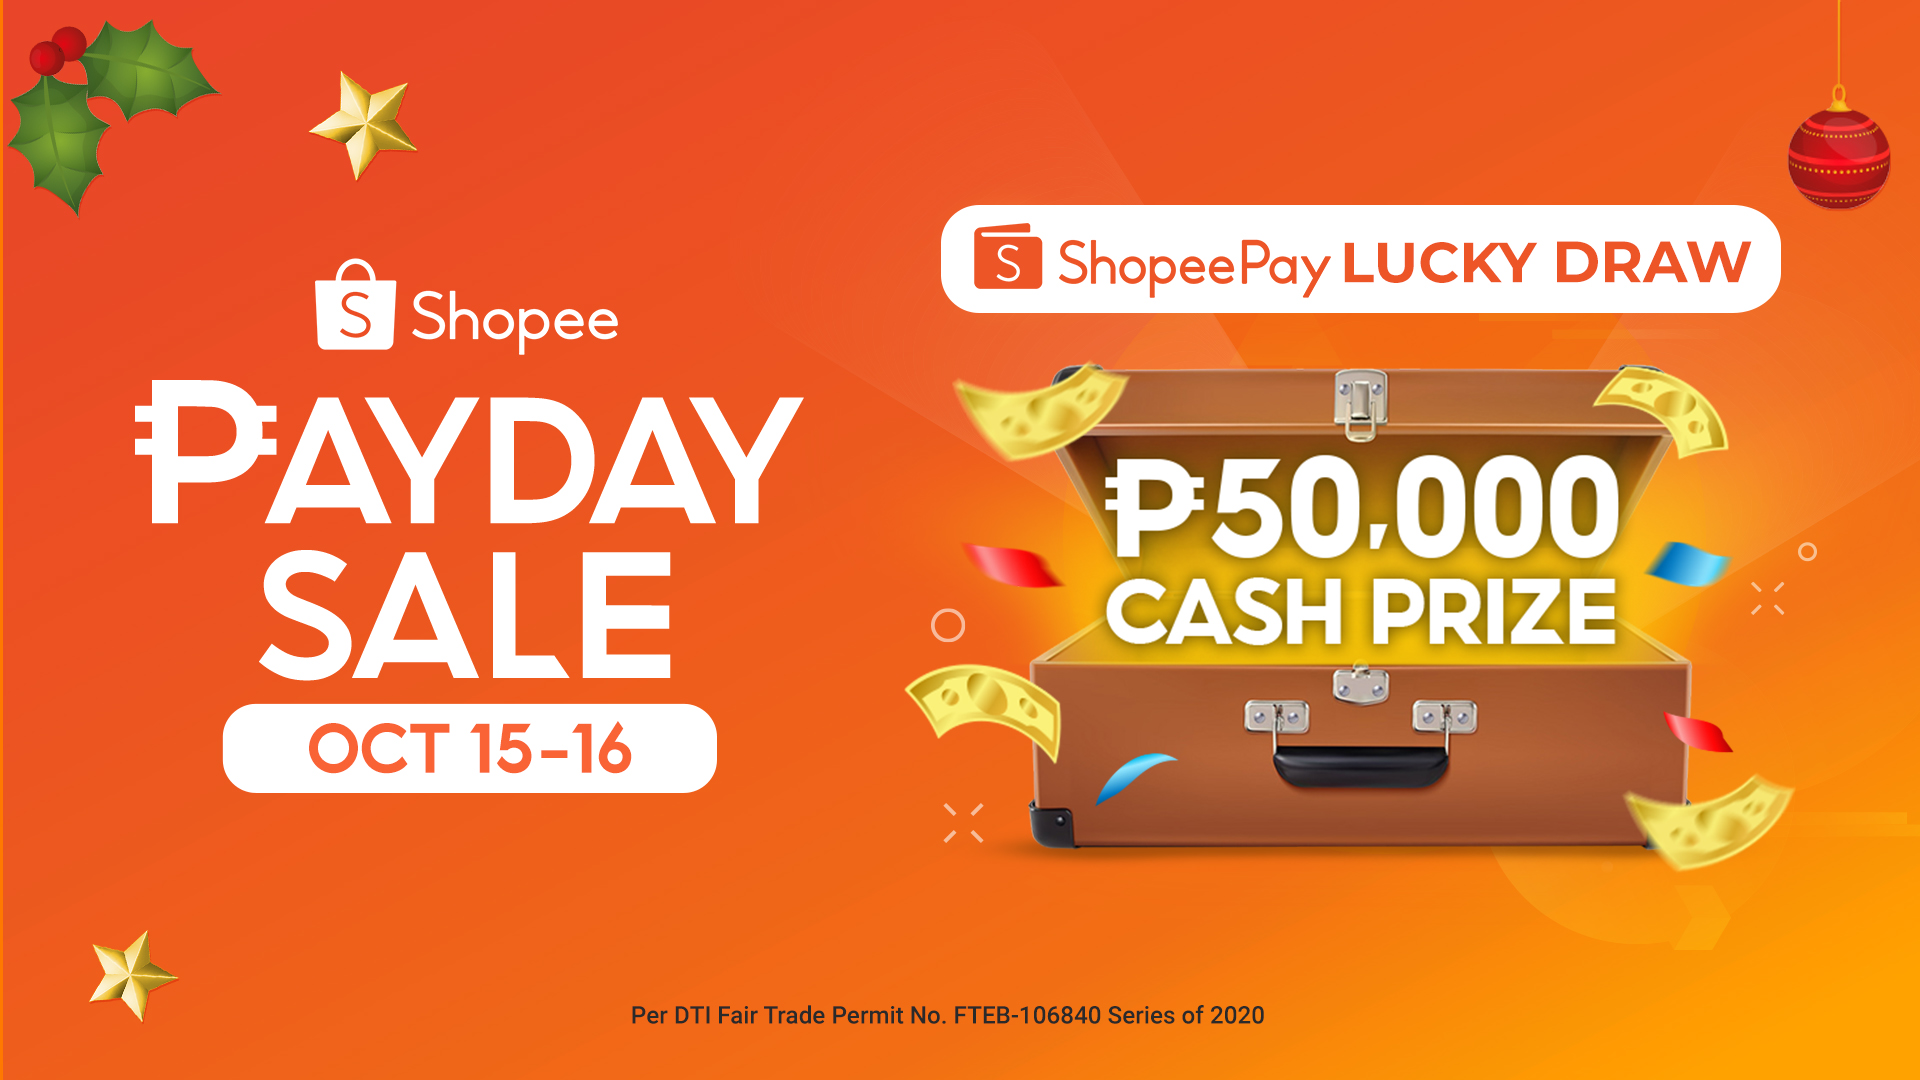 Top up on ShopeePay and stand a chance to win ₱50,000 this Shopee Payday Sale